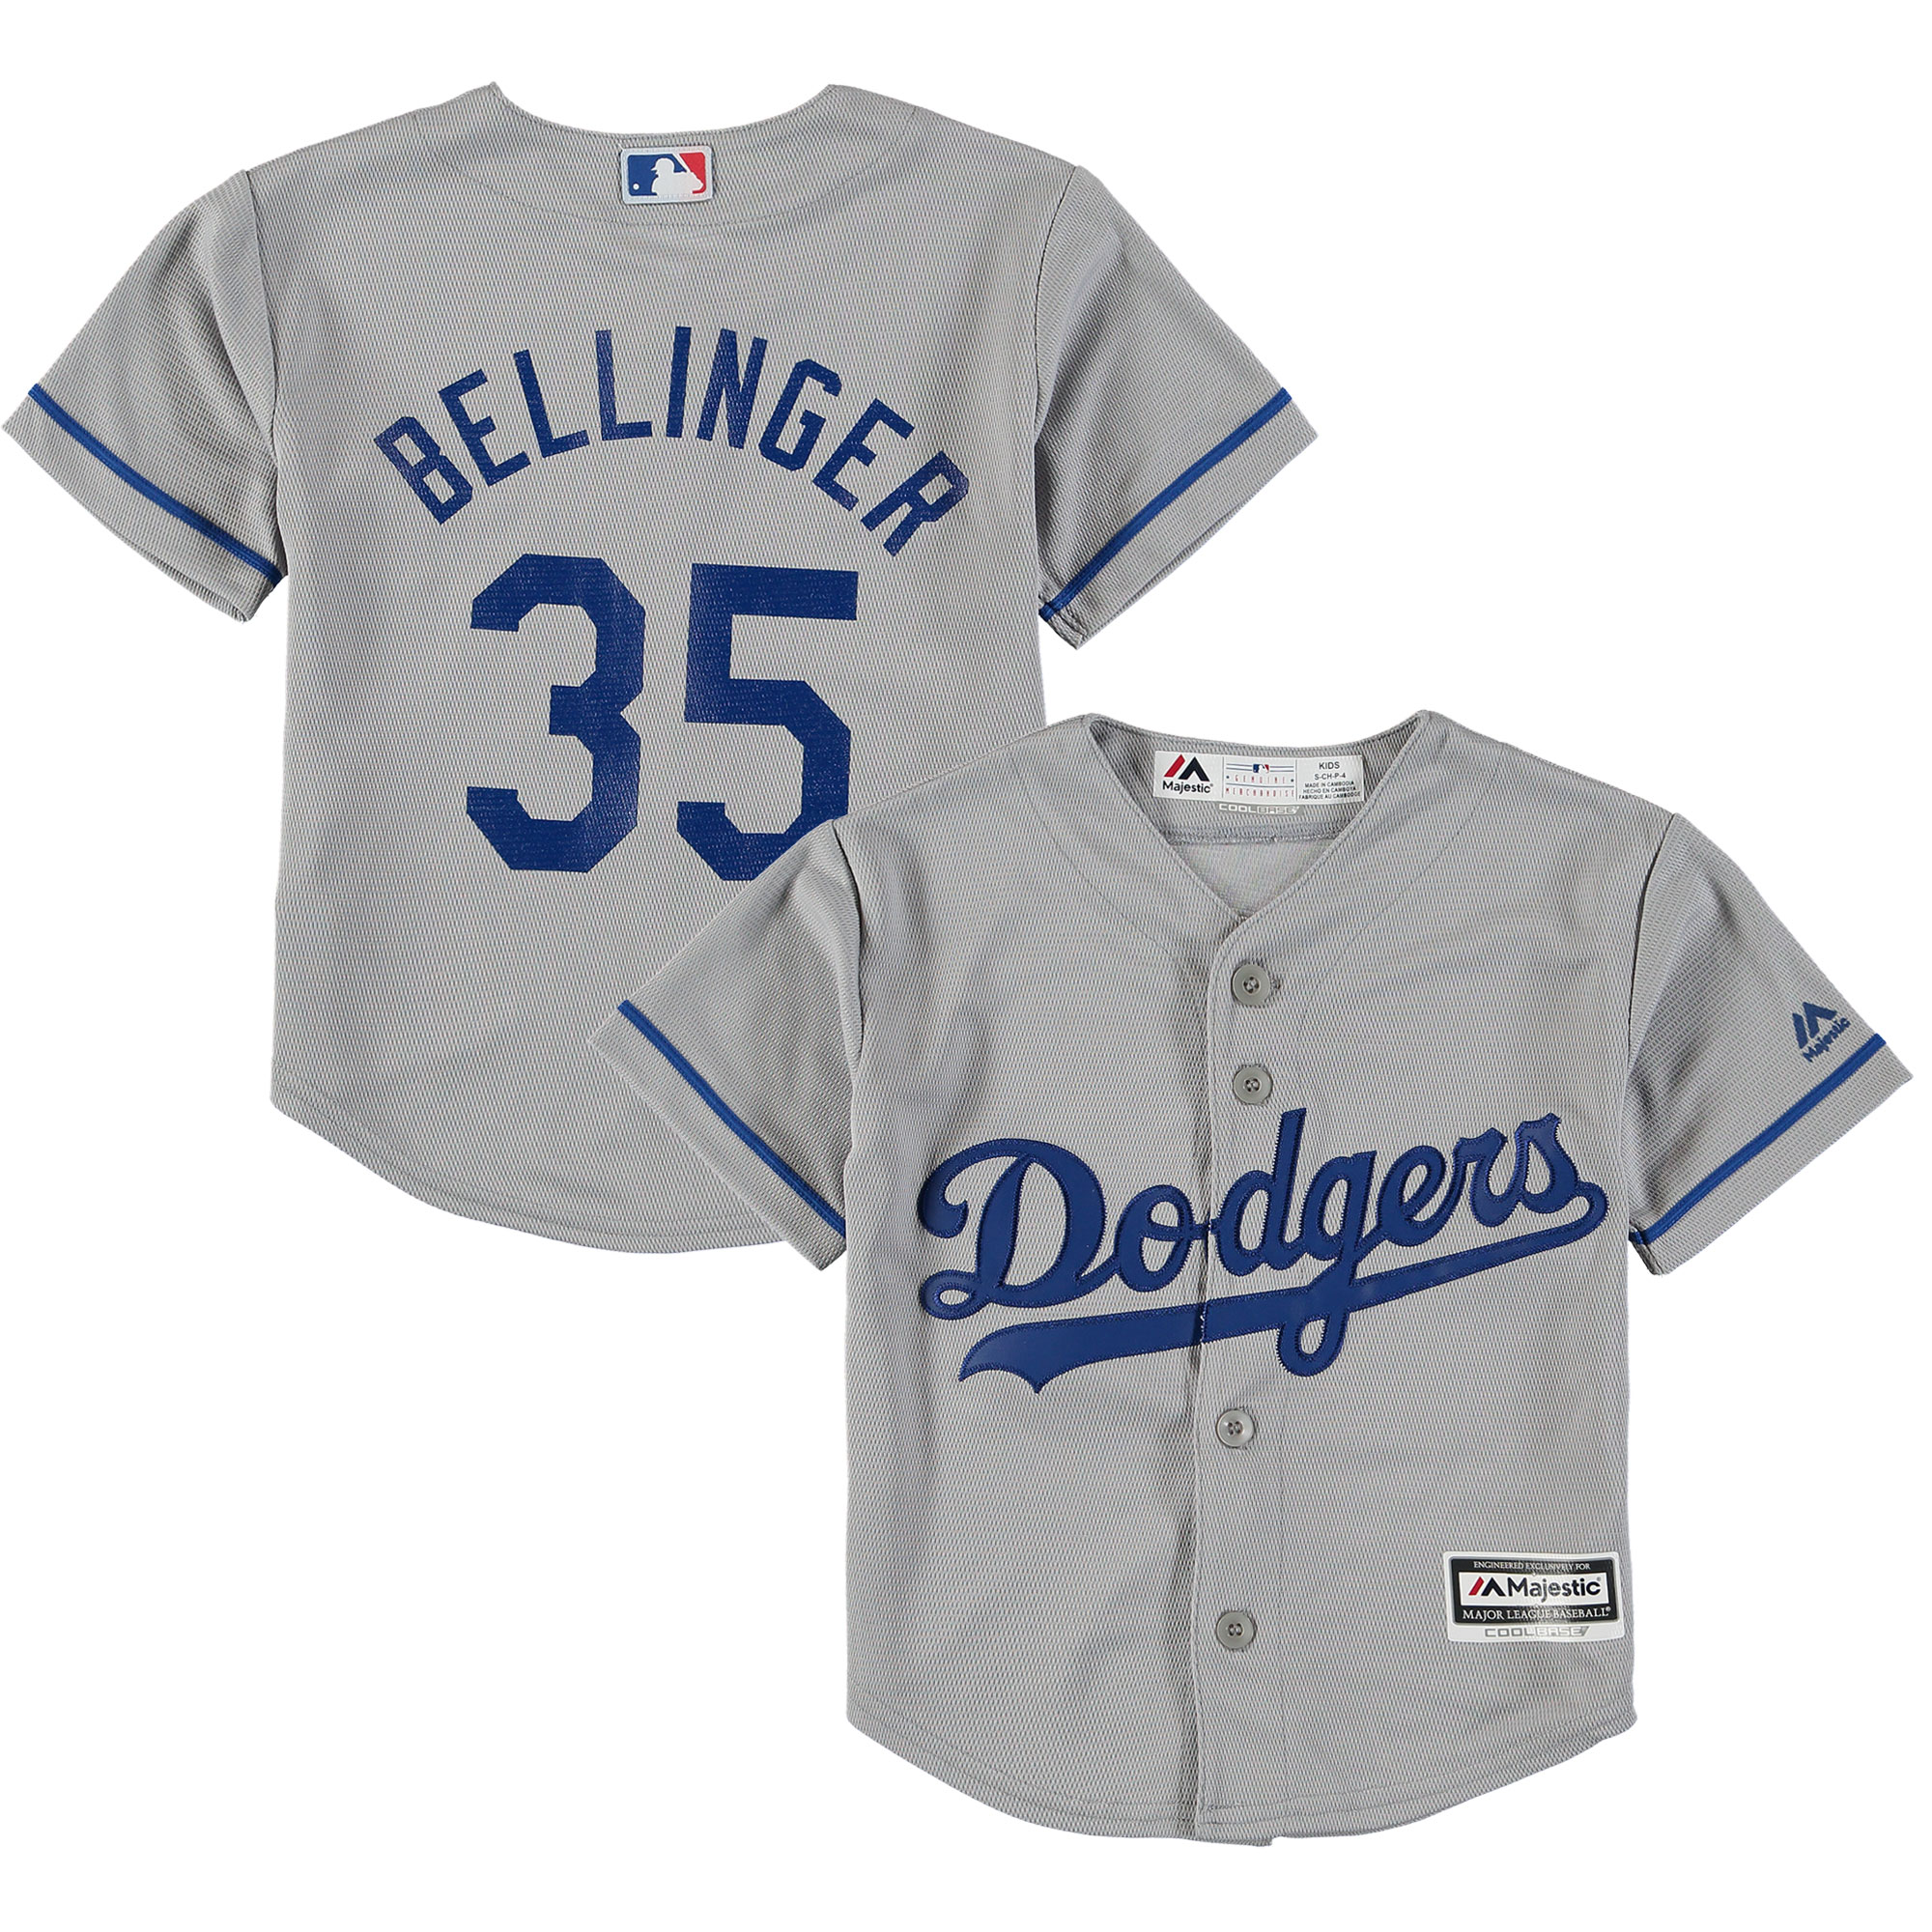 Cody Bellinger Los Angeles Dodgers Majestic Preschool Road Official Cool Base Player Jersey Gray by Outerstuff